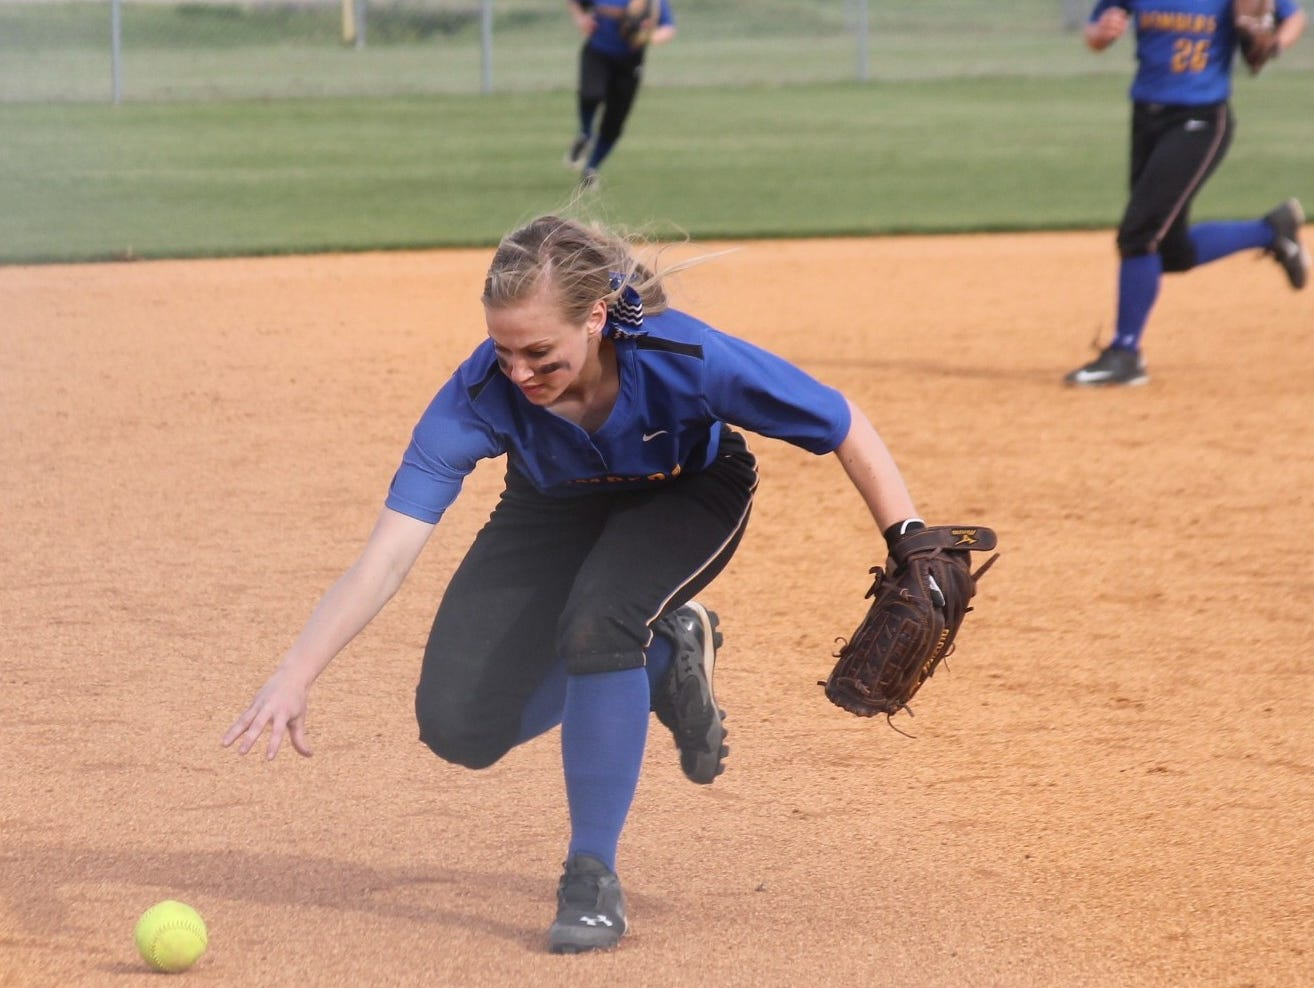 Mountain Home's Macie Kelly fields a ground ball during the Lady Bombers' 10-3 loss at Marion on Thursday night.